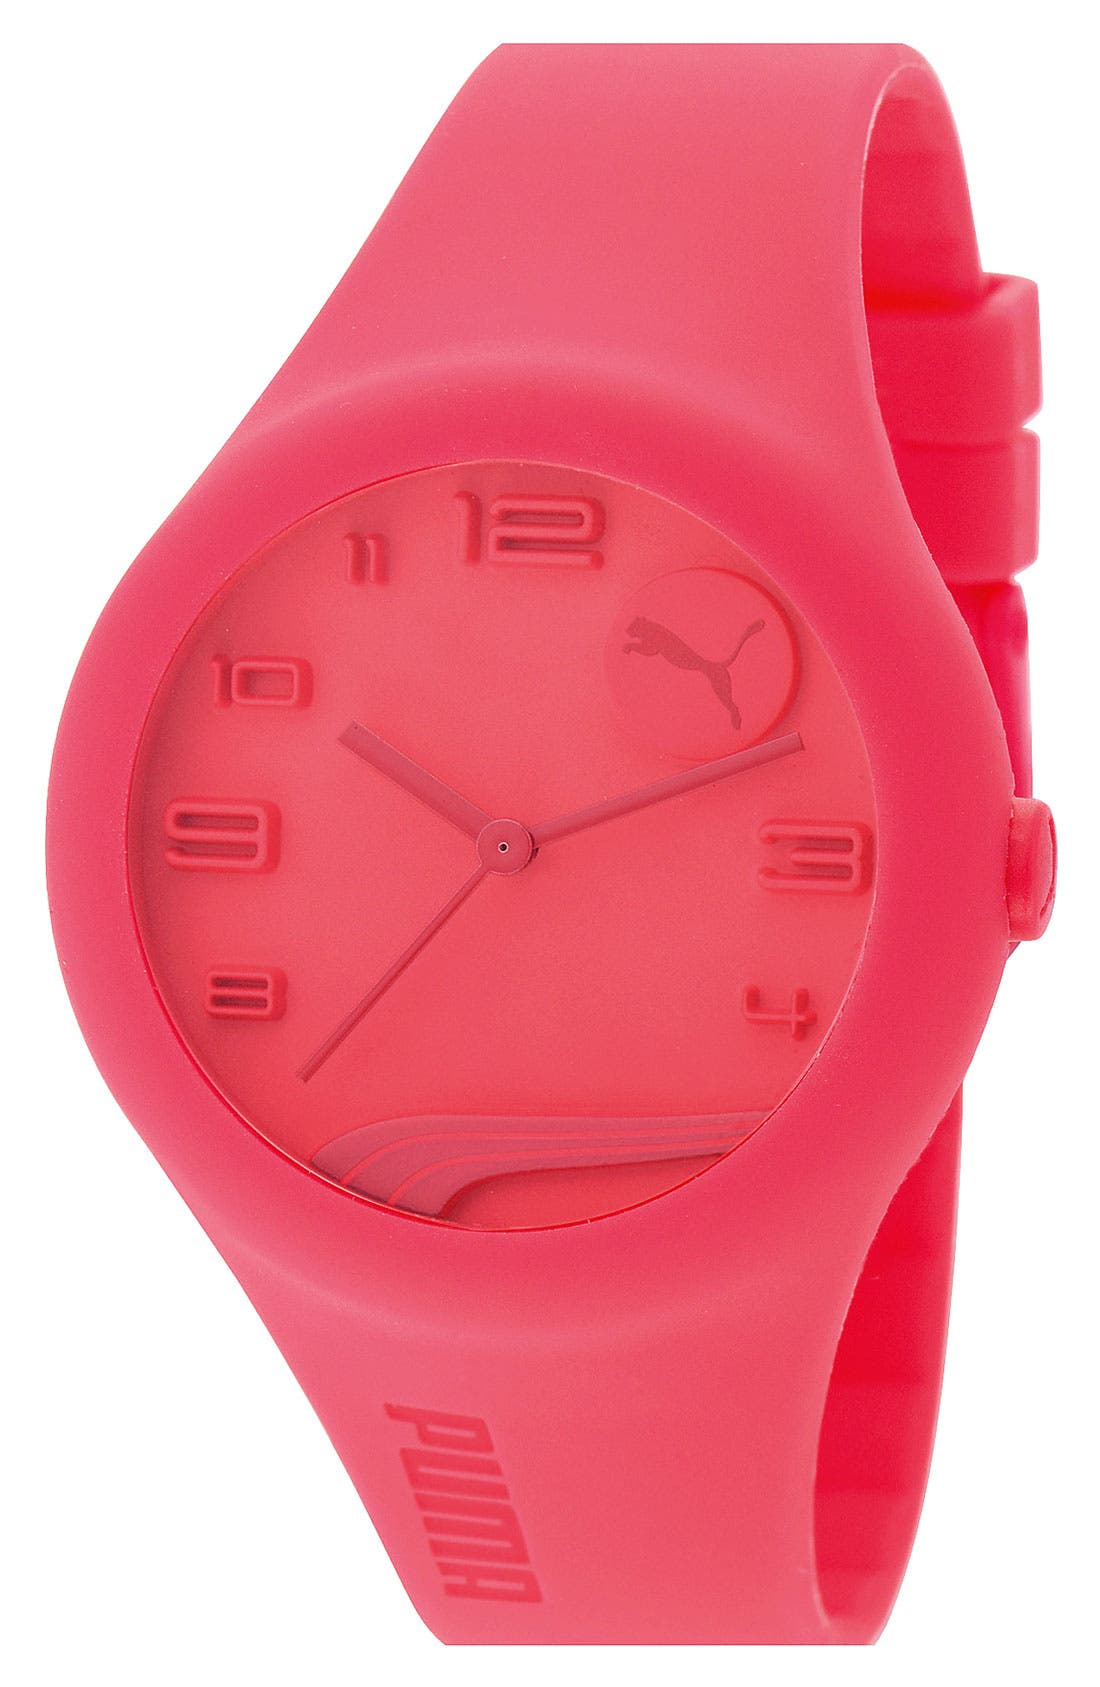 Alternate Image 1 Selected - PUMA 'Form' Silicone Watch, 44mm